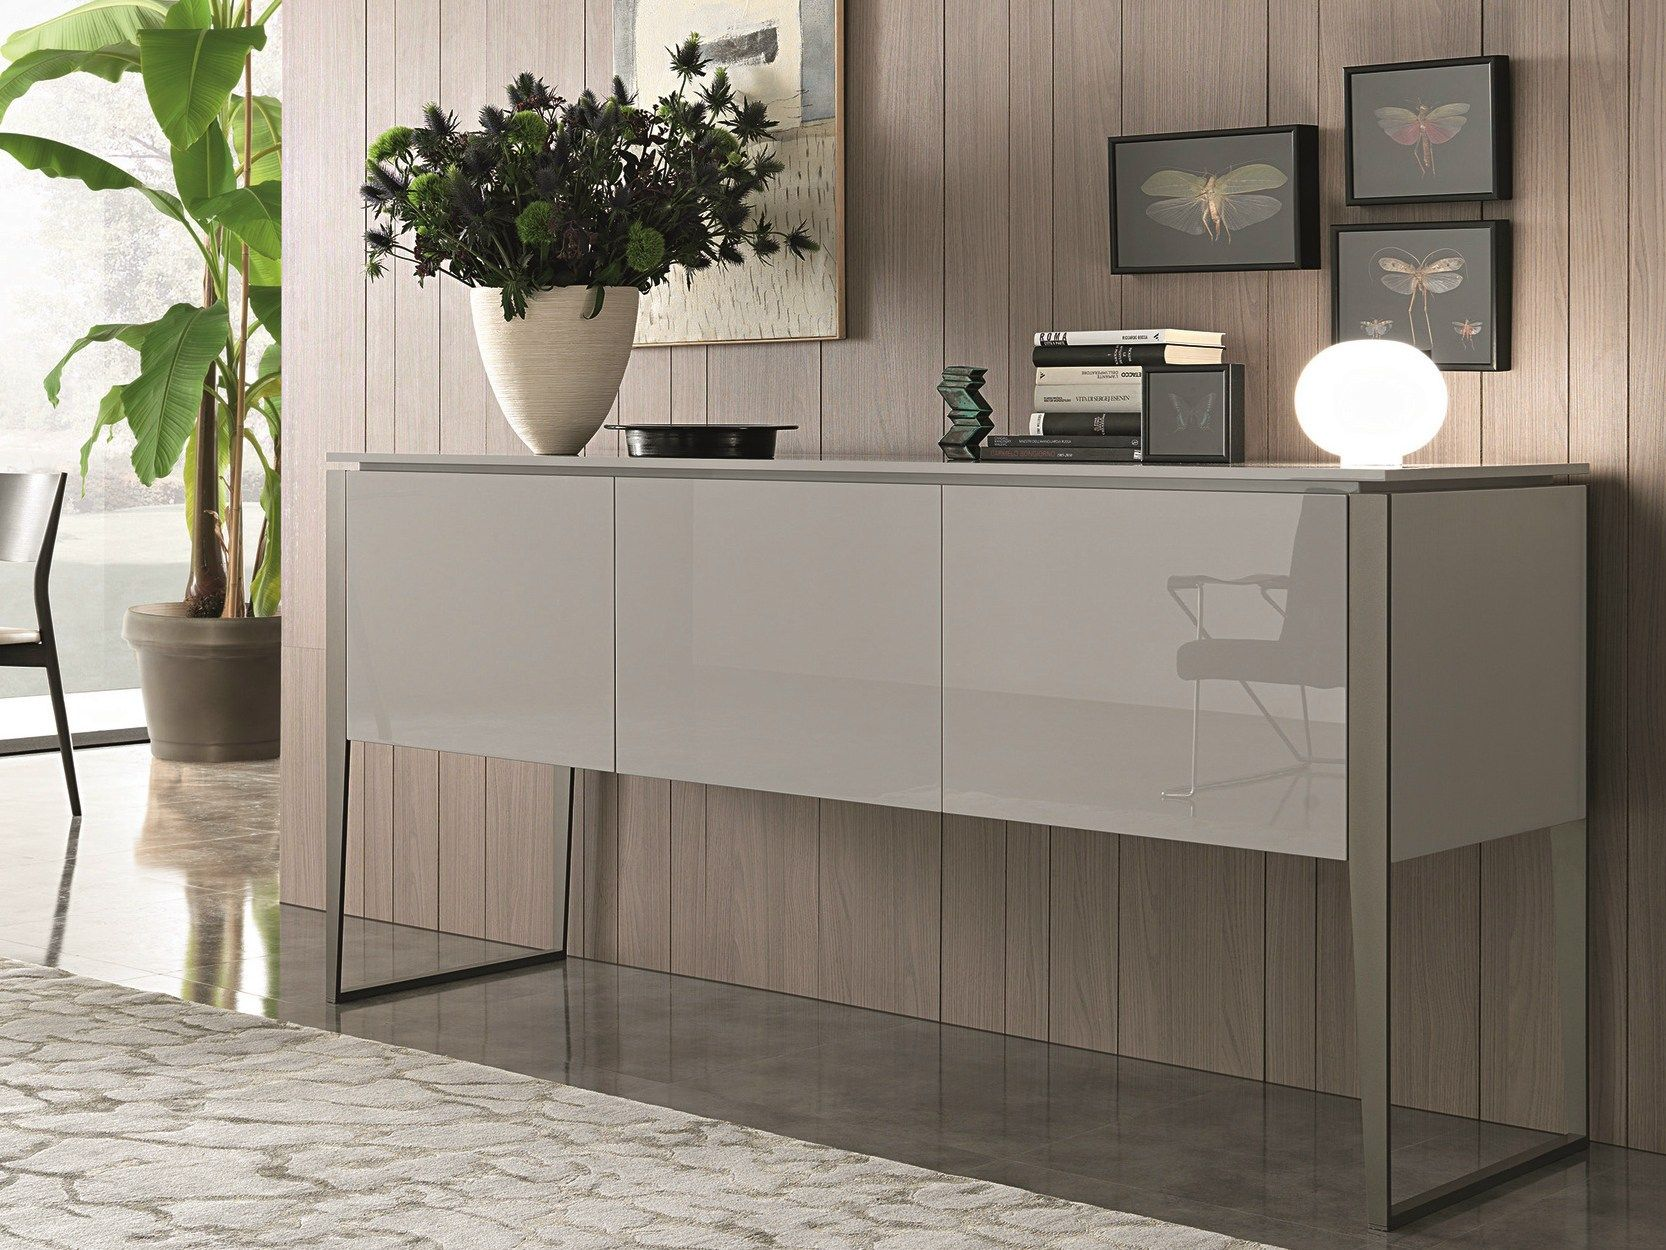 Lacquered Sideboard With Doors Nibbio Atelier Collection By Misuraemme -